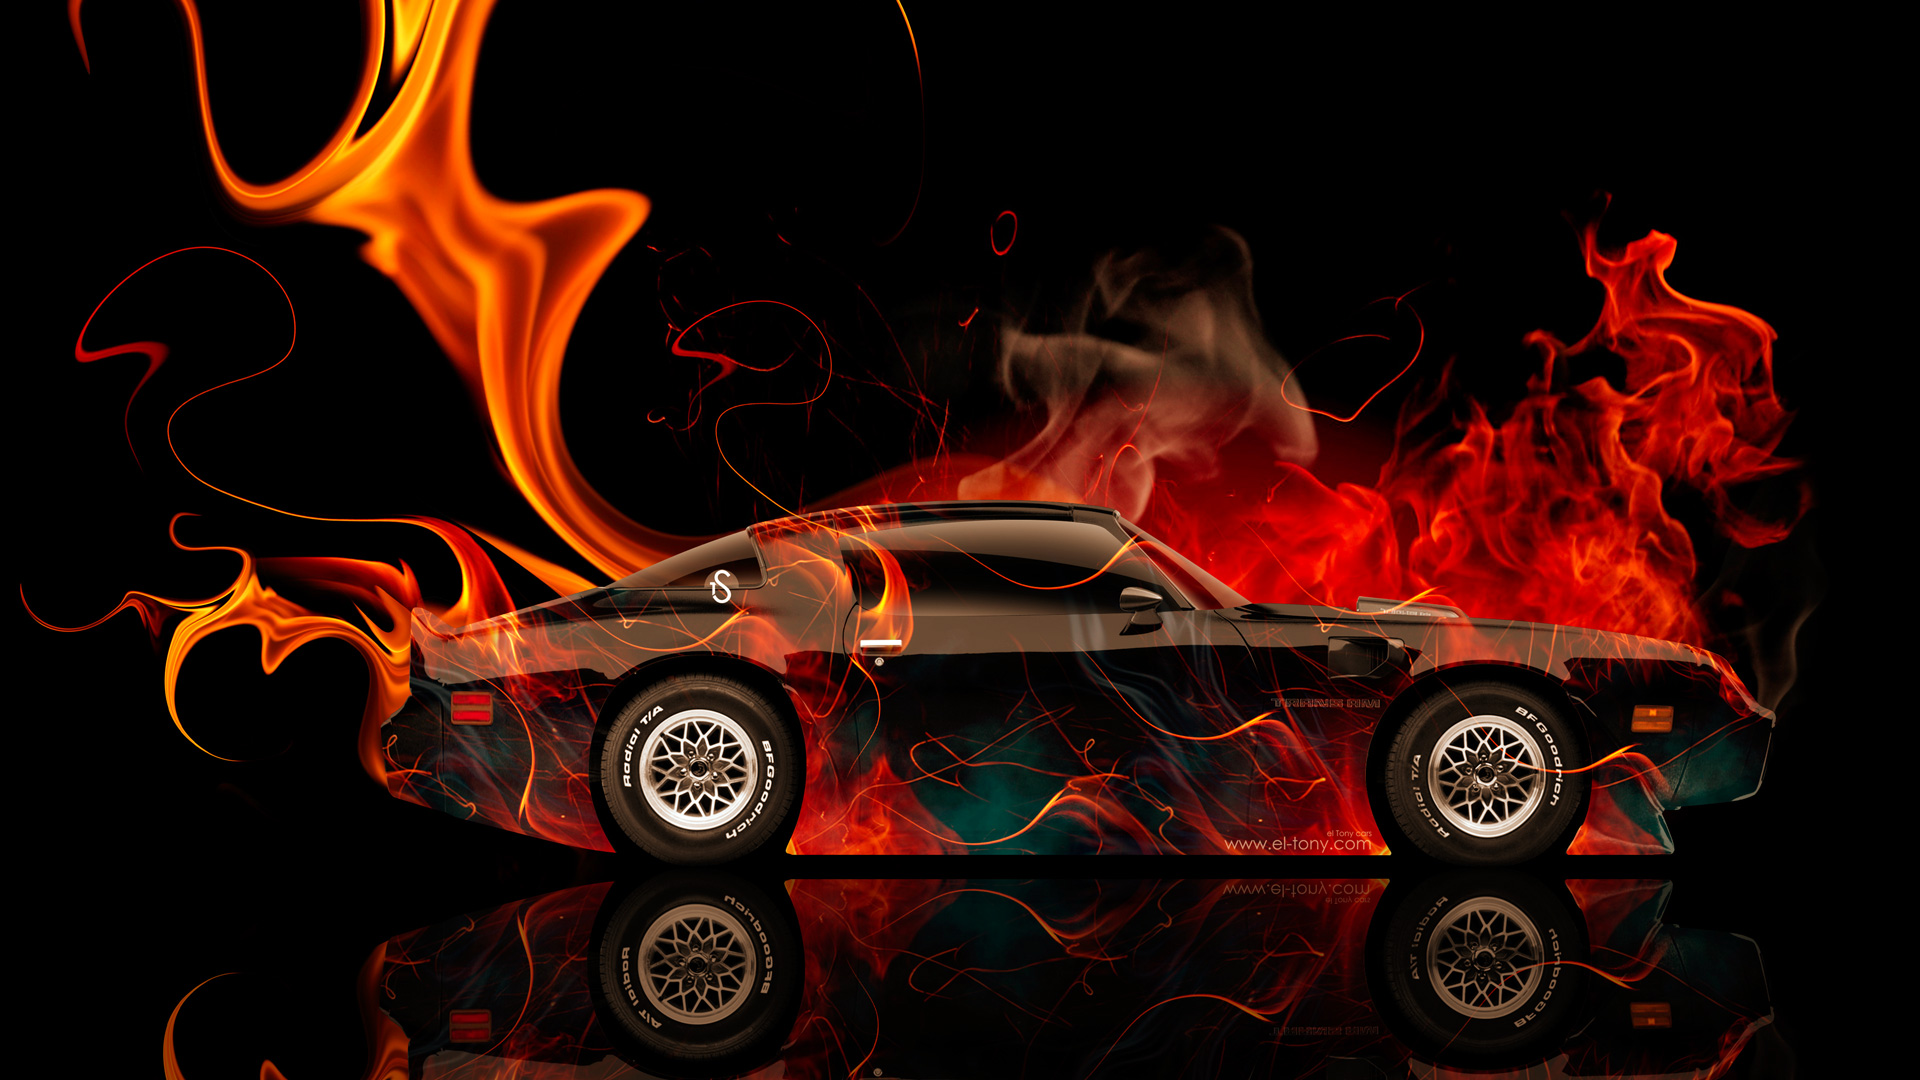 Bmw m6 hamann tuning side green fire abstract car 2015 hd wallpapers - Side Fire Car 2014 Chevrolet Camaro Muscle Side Fire Abstract Car